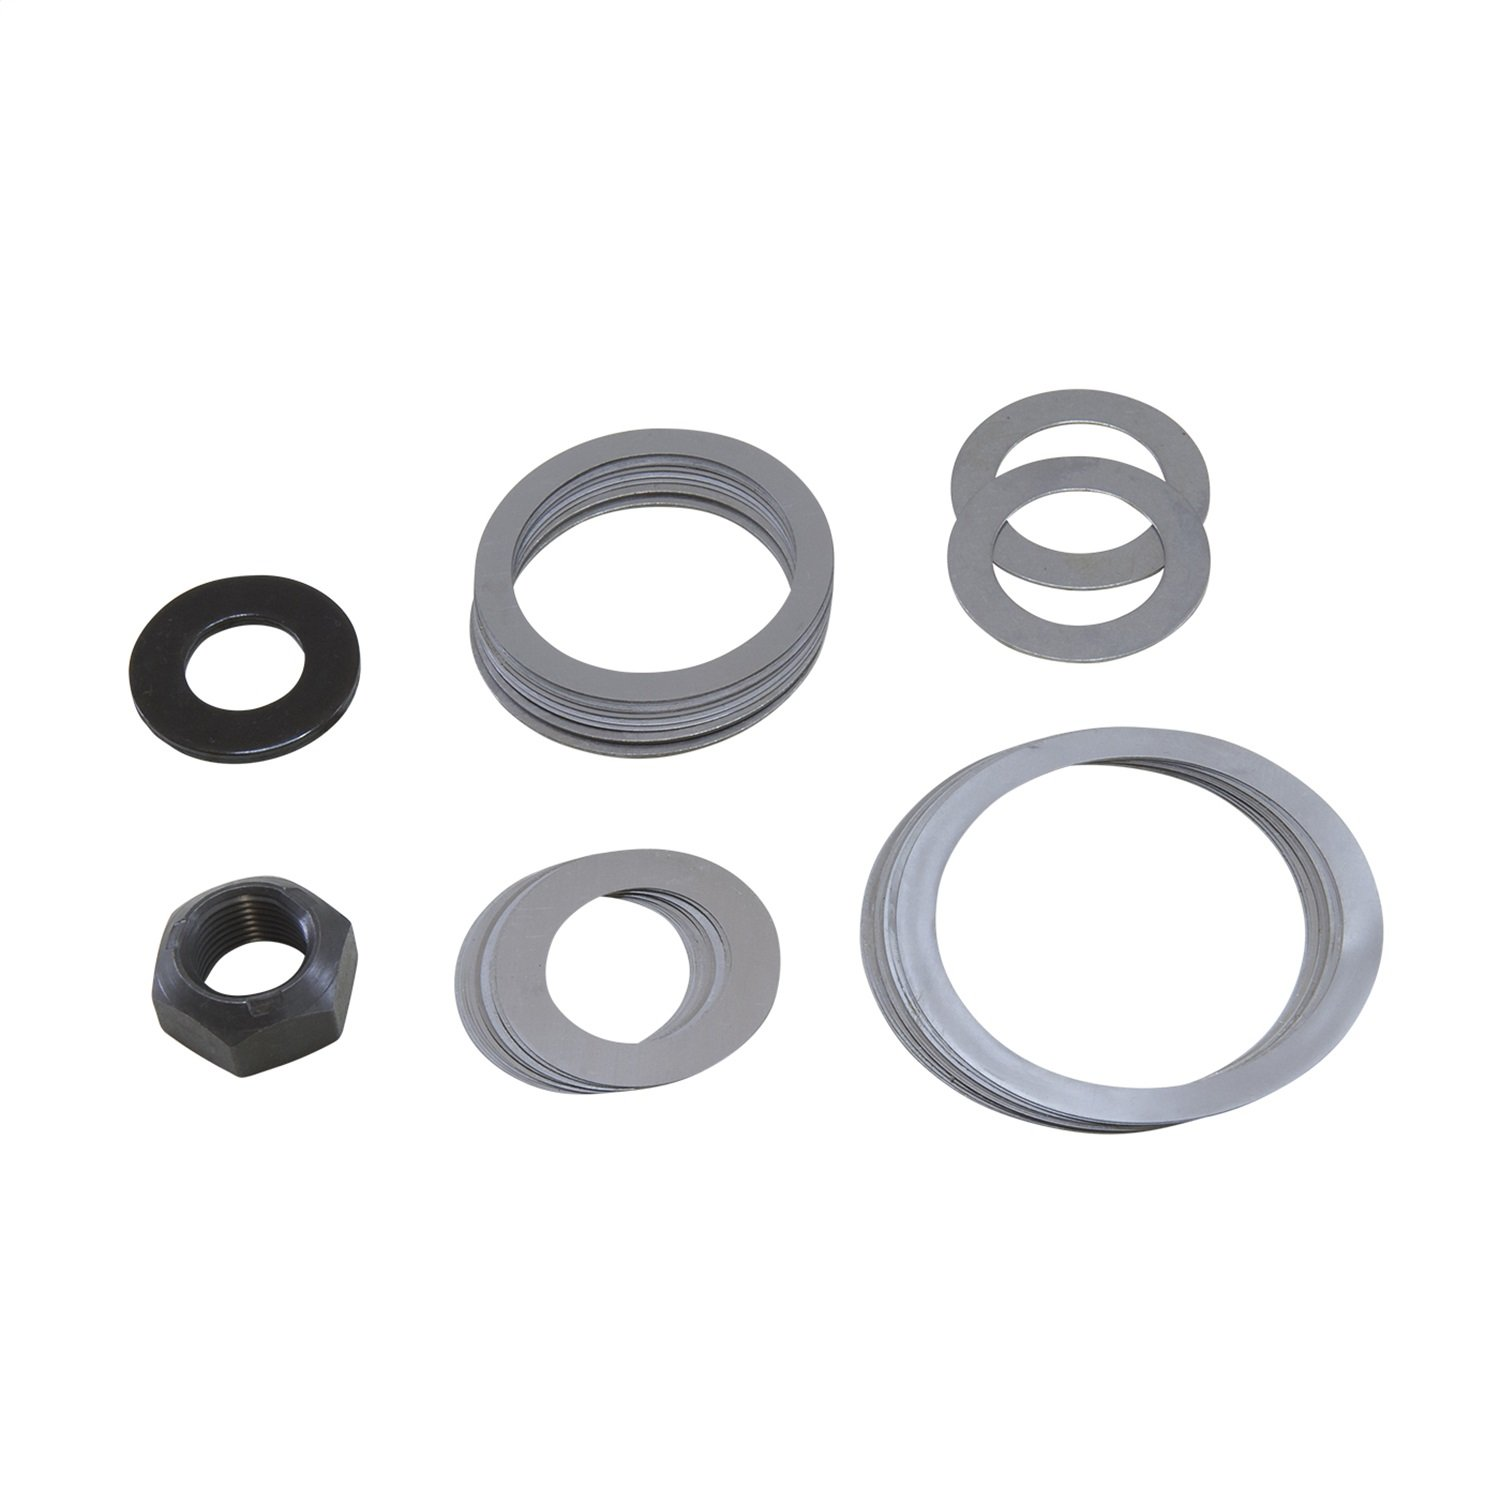 Yukon Gear & Axle (SK 706376) Replacement Complete Shim Kit for Dana 44 Differential